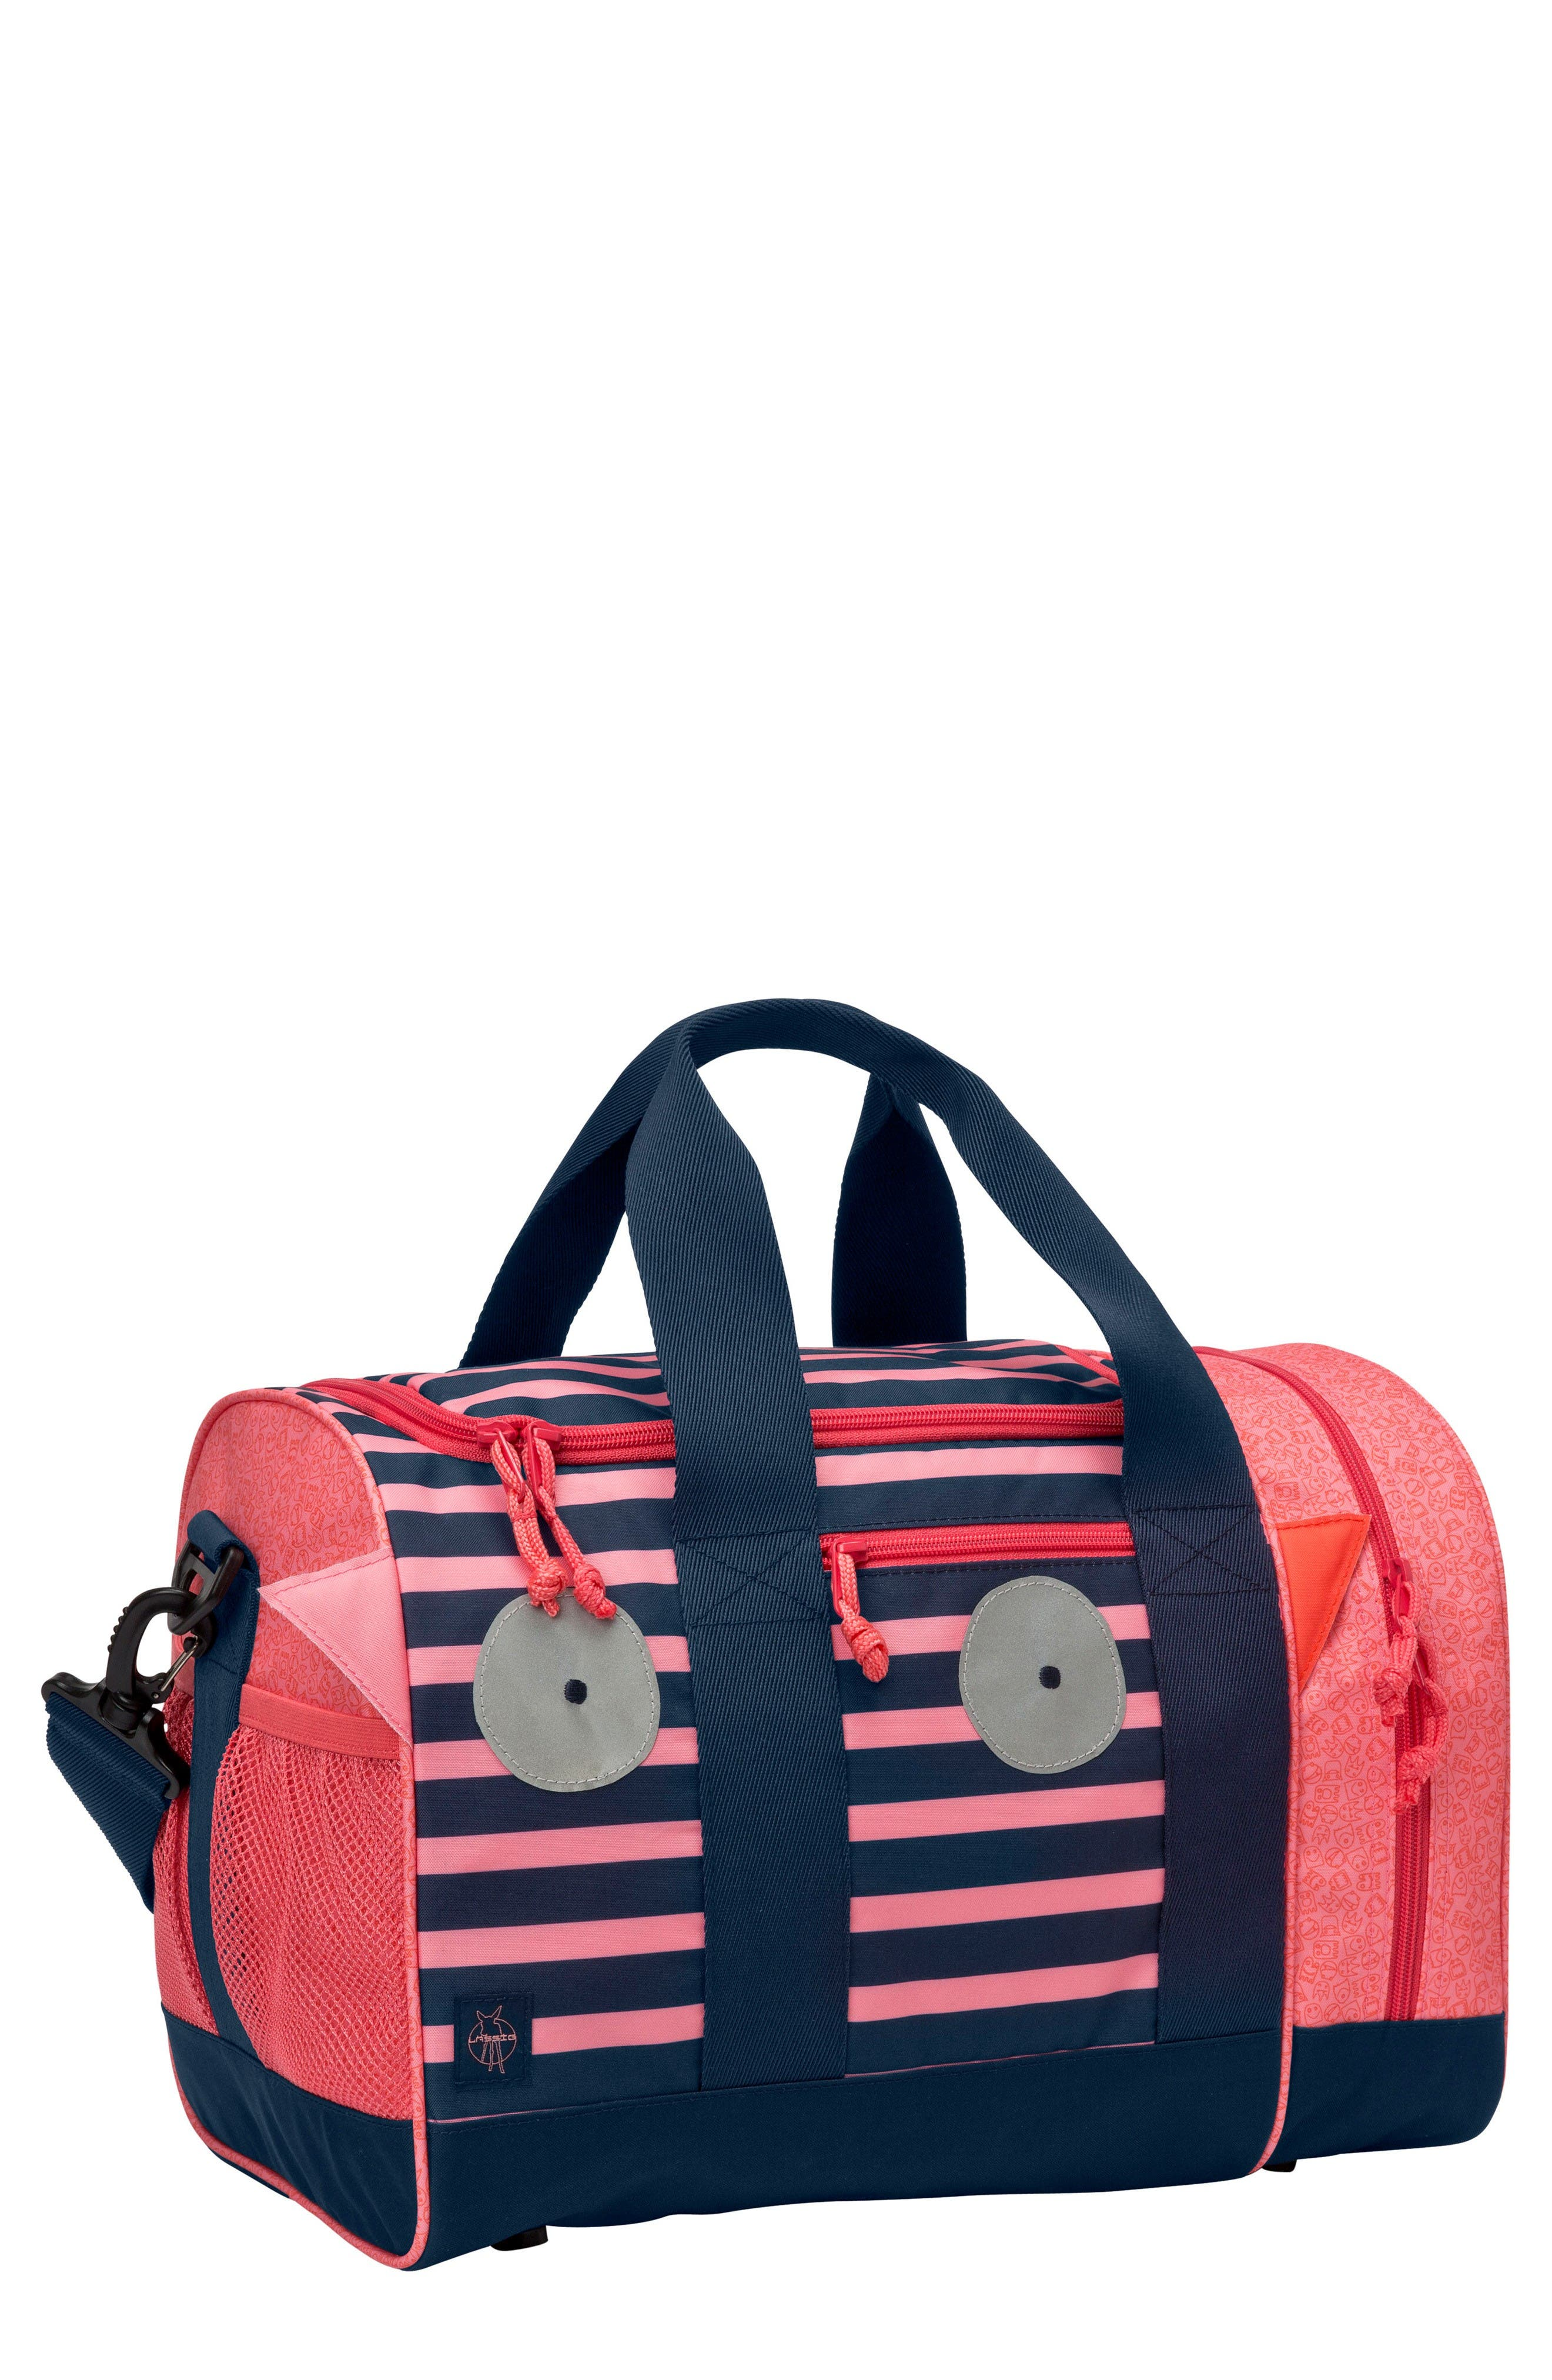 Lässig Mini Sports Bag with Glow-in-the-Dark Eyes (Kids)